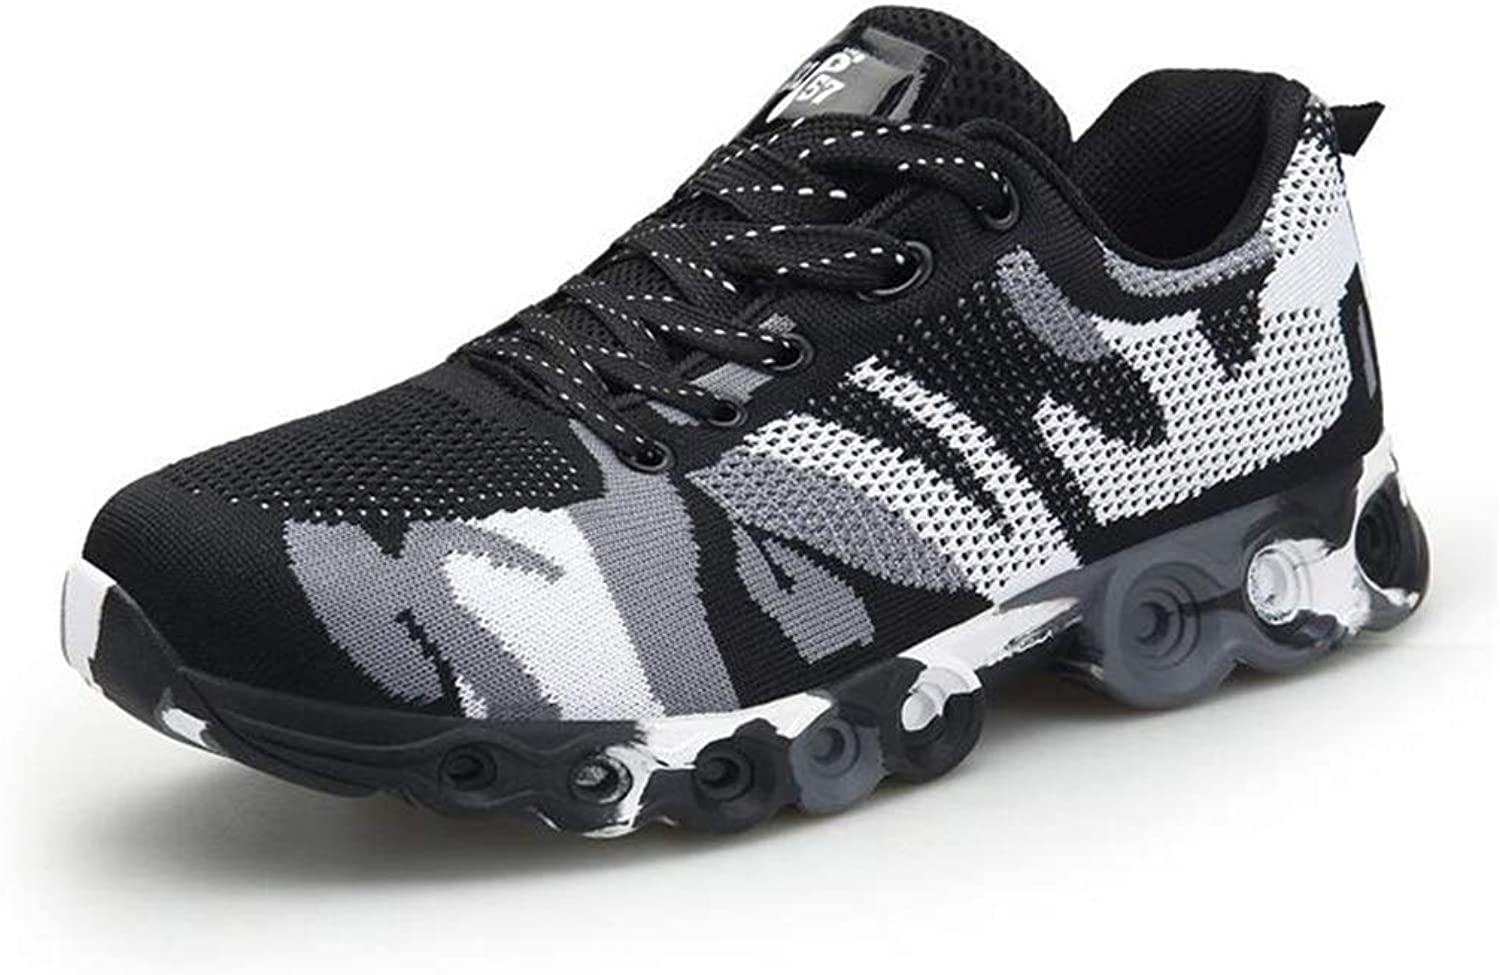 Mens's shoes Breathable Camouflage shoes Knit Training shoes Running shoes Outdoor Sports shoes men Sneakers